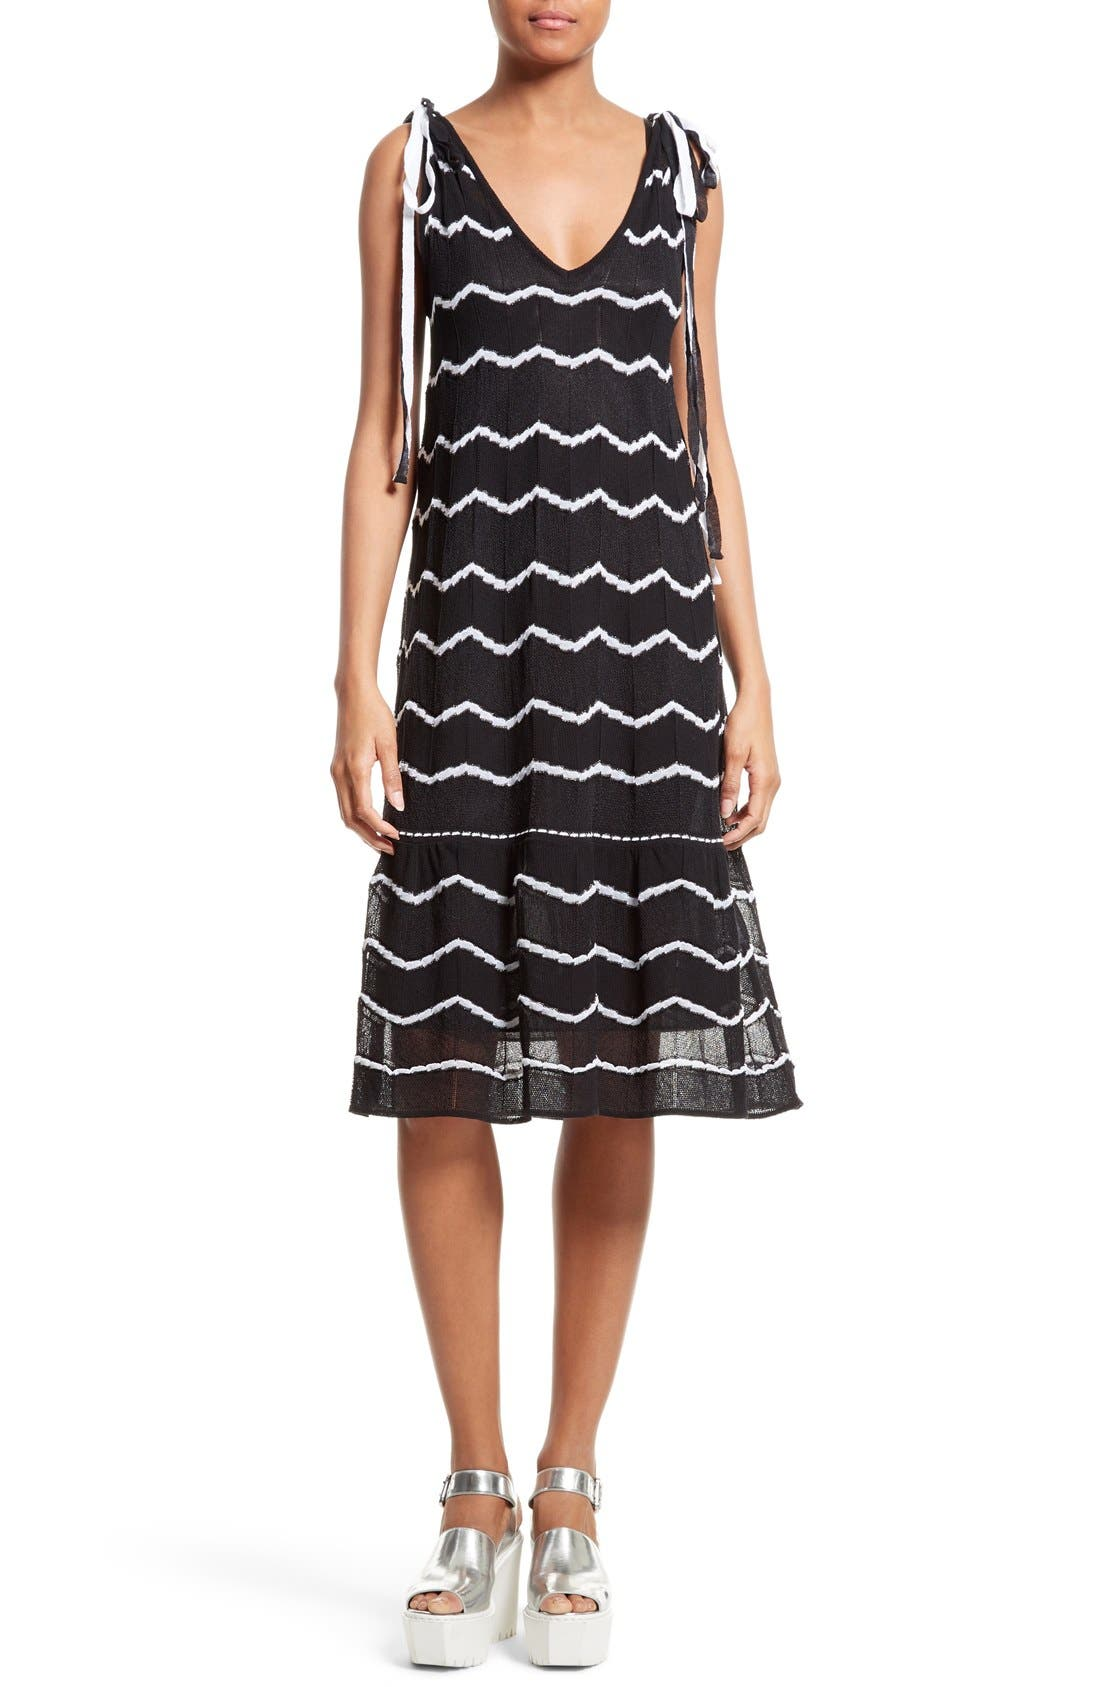 M Missoni Knit Midi Dress